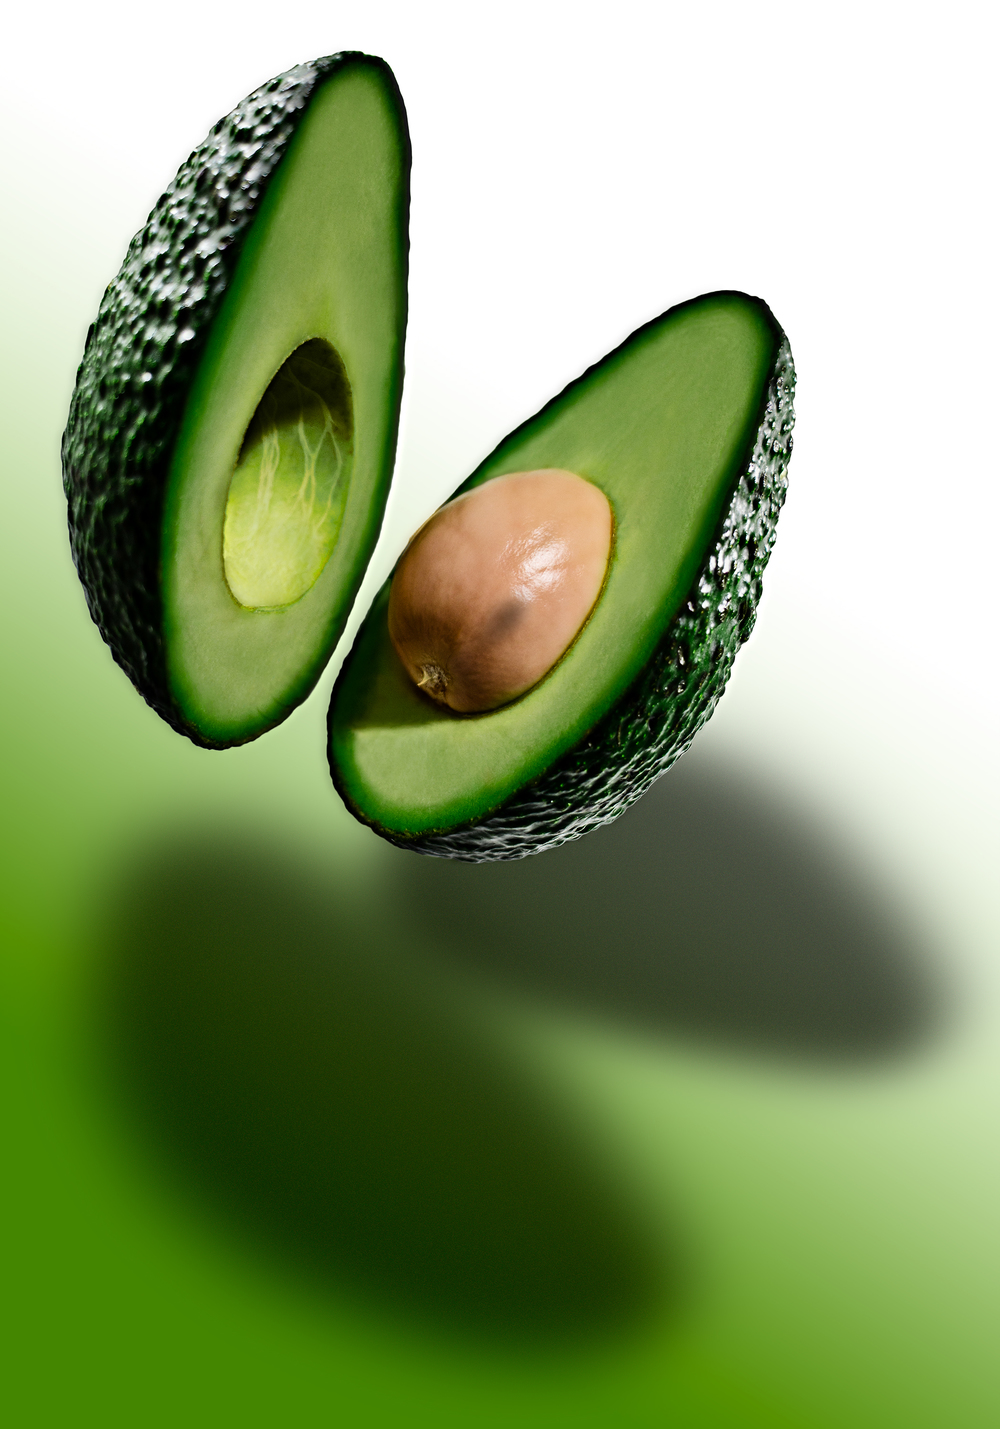 Avocado_ShadowEdit_3.jpg